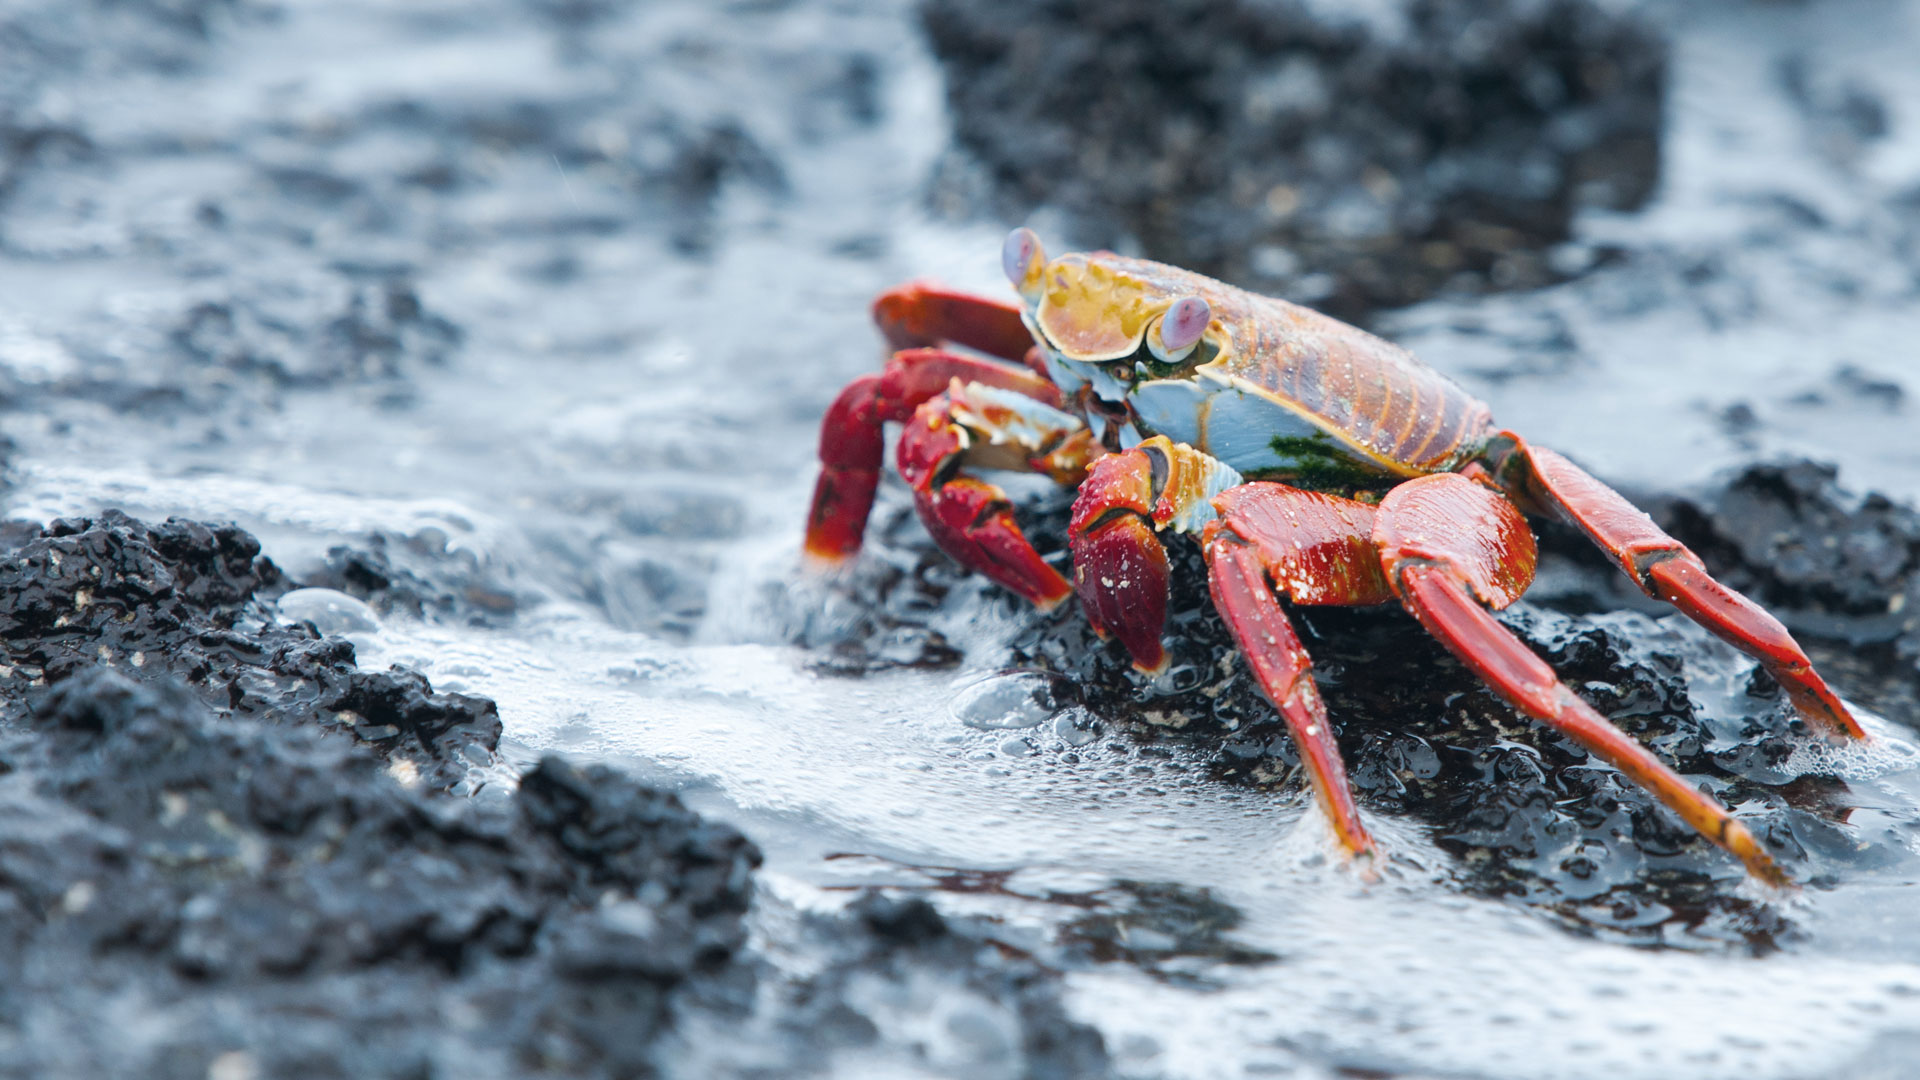 Galapagos Family Trip - Will Bolsover - Sally Lightfoot Crab